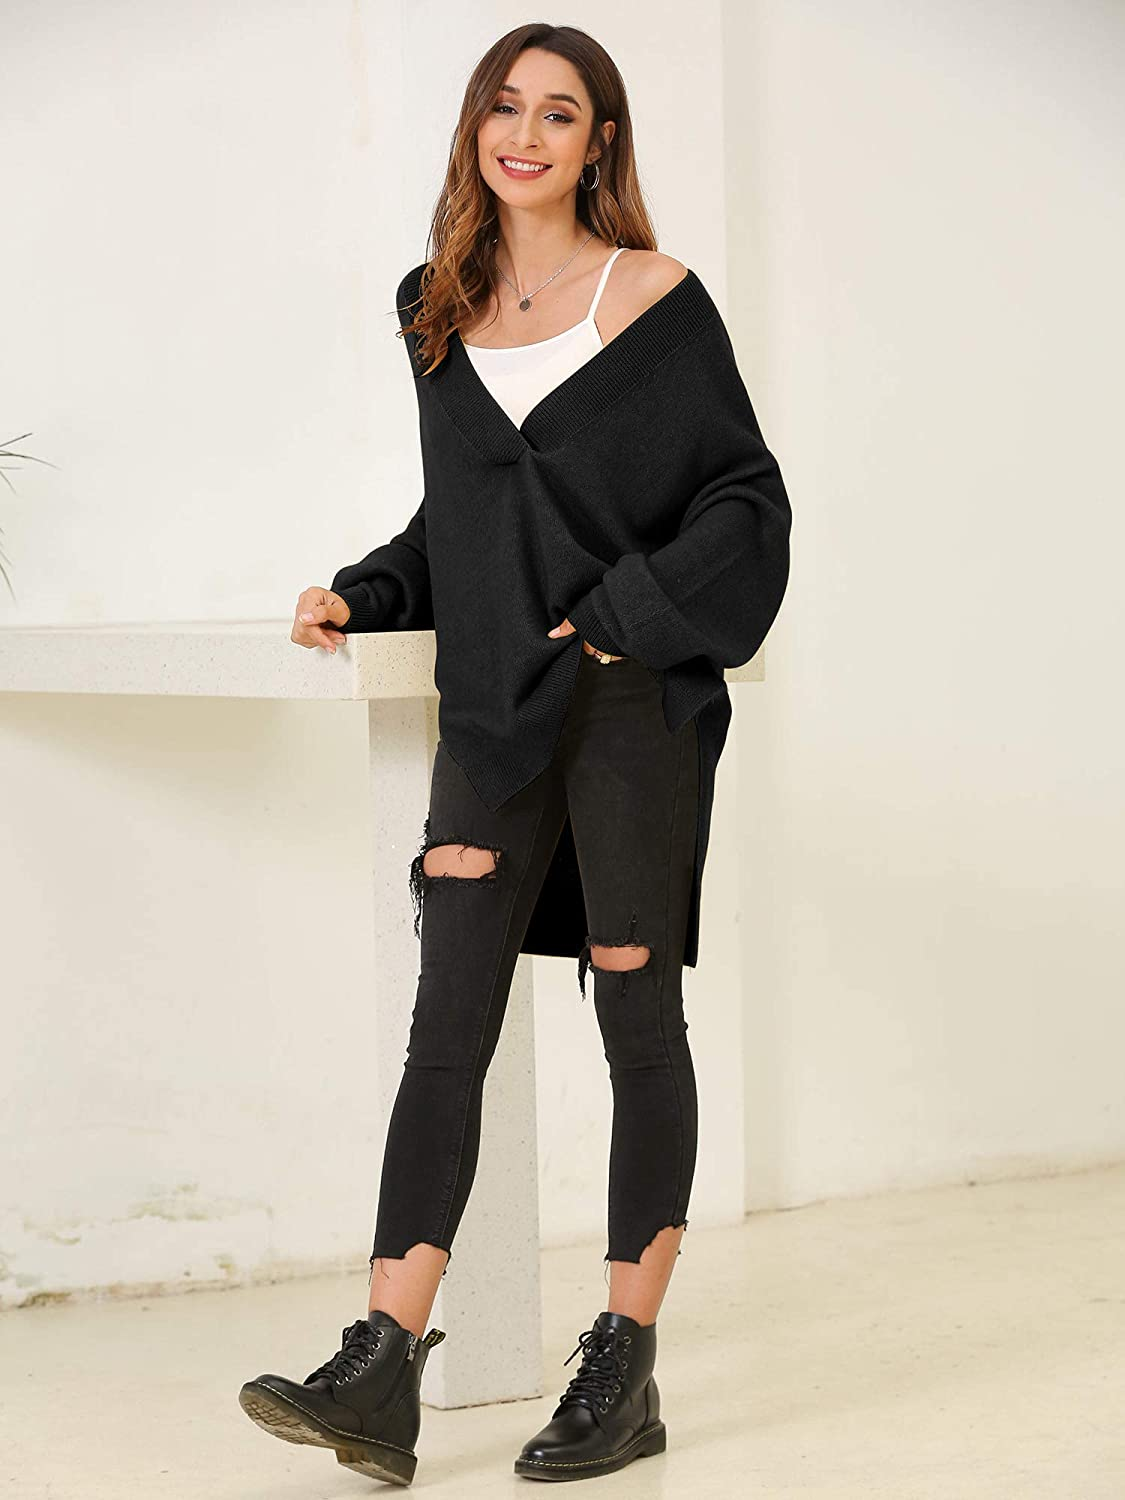 Oversized Sweaters for Women V Neck Slouchy Loose Fall Sweater Casual Asymmetric Long Baggy Pullover for Women Girl